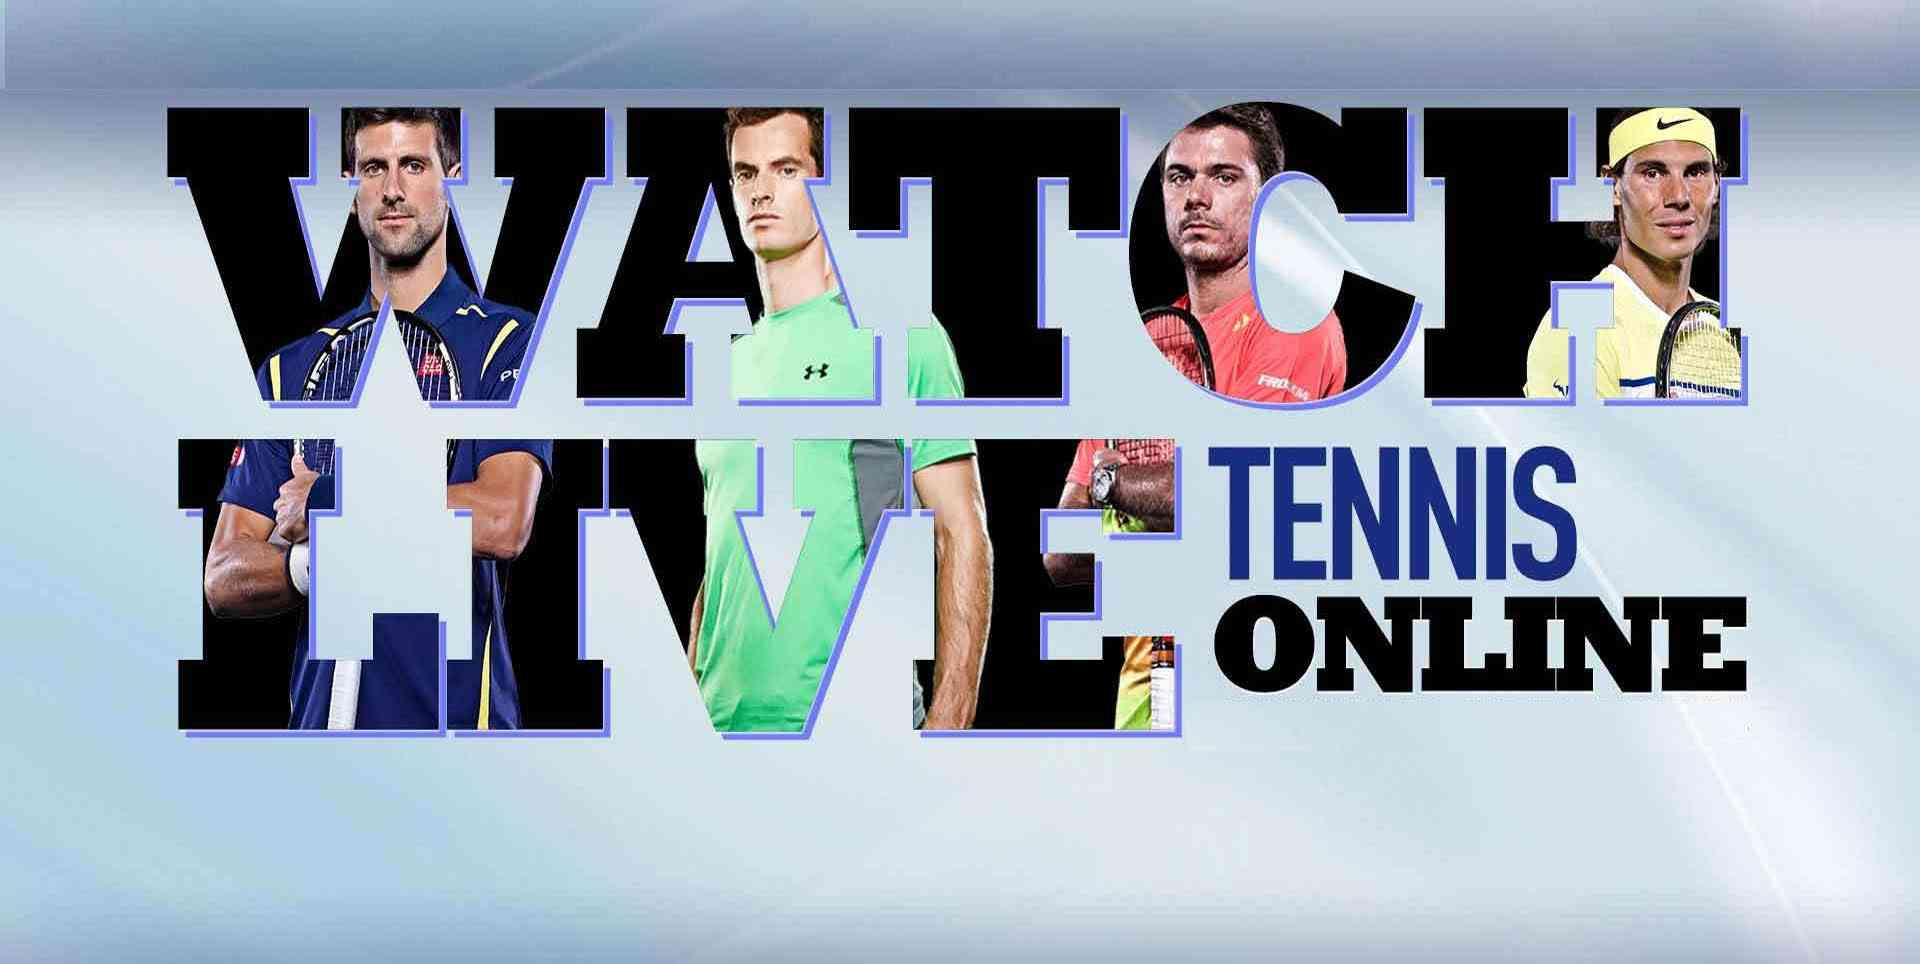 Watch T. Haas vs G. Dimitrov Mens Singles Quarterfinals Online 2013